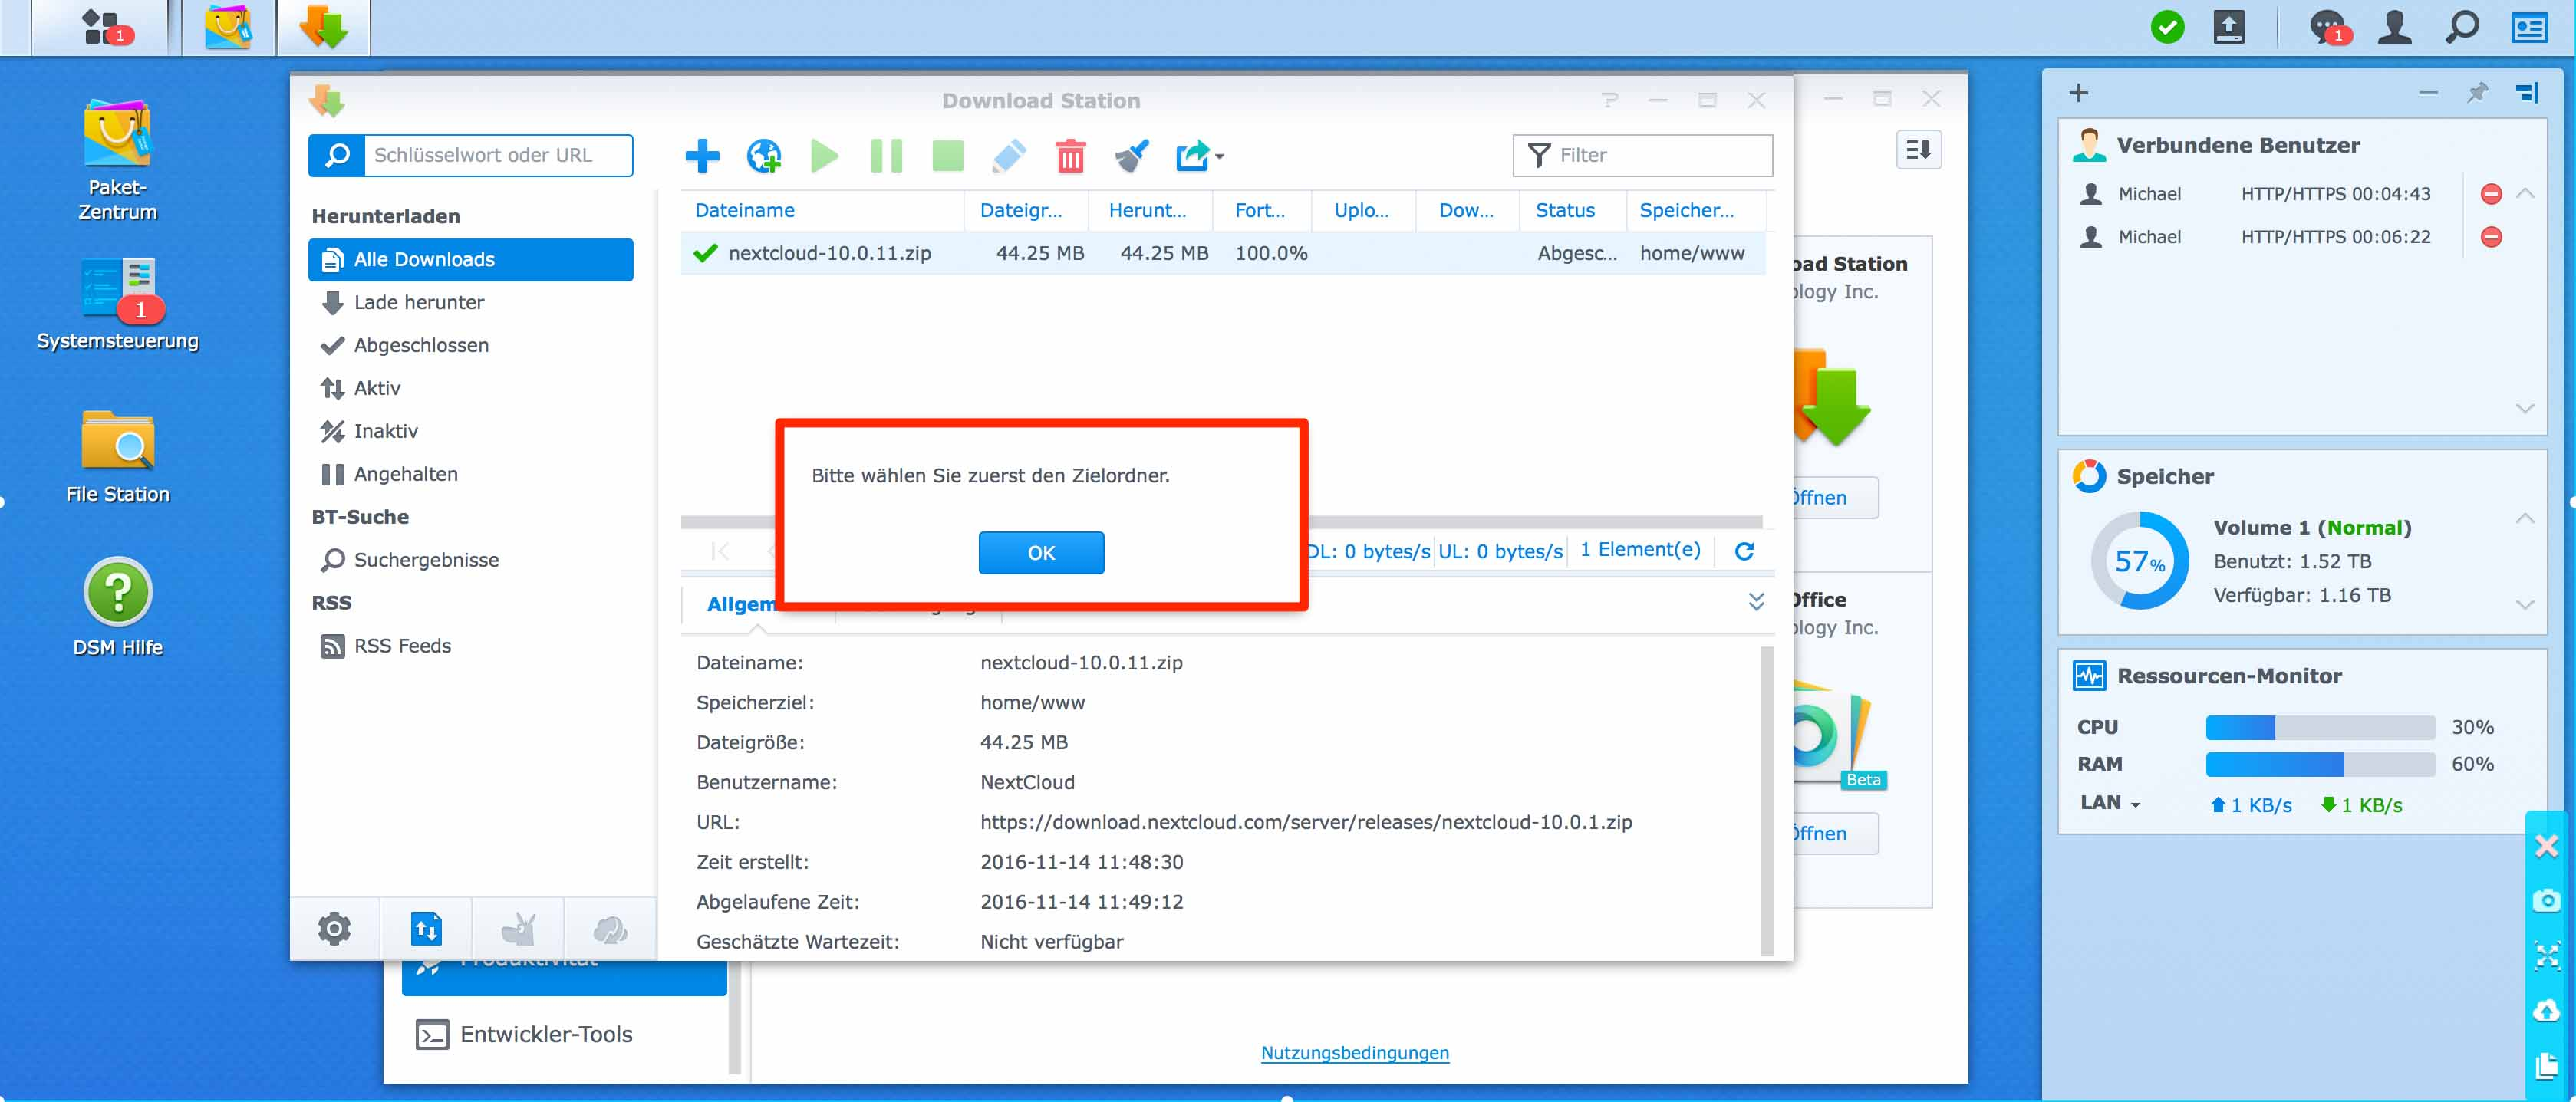 synology_tutorial_dsm6_download_station_04